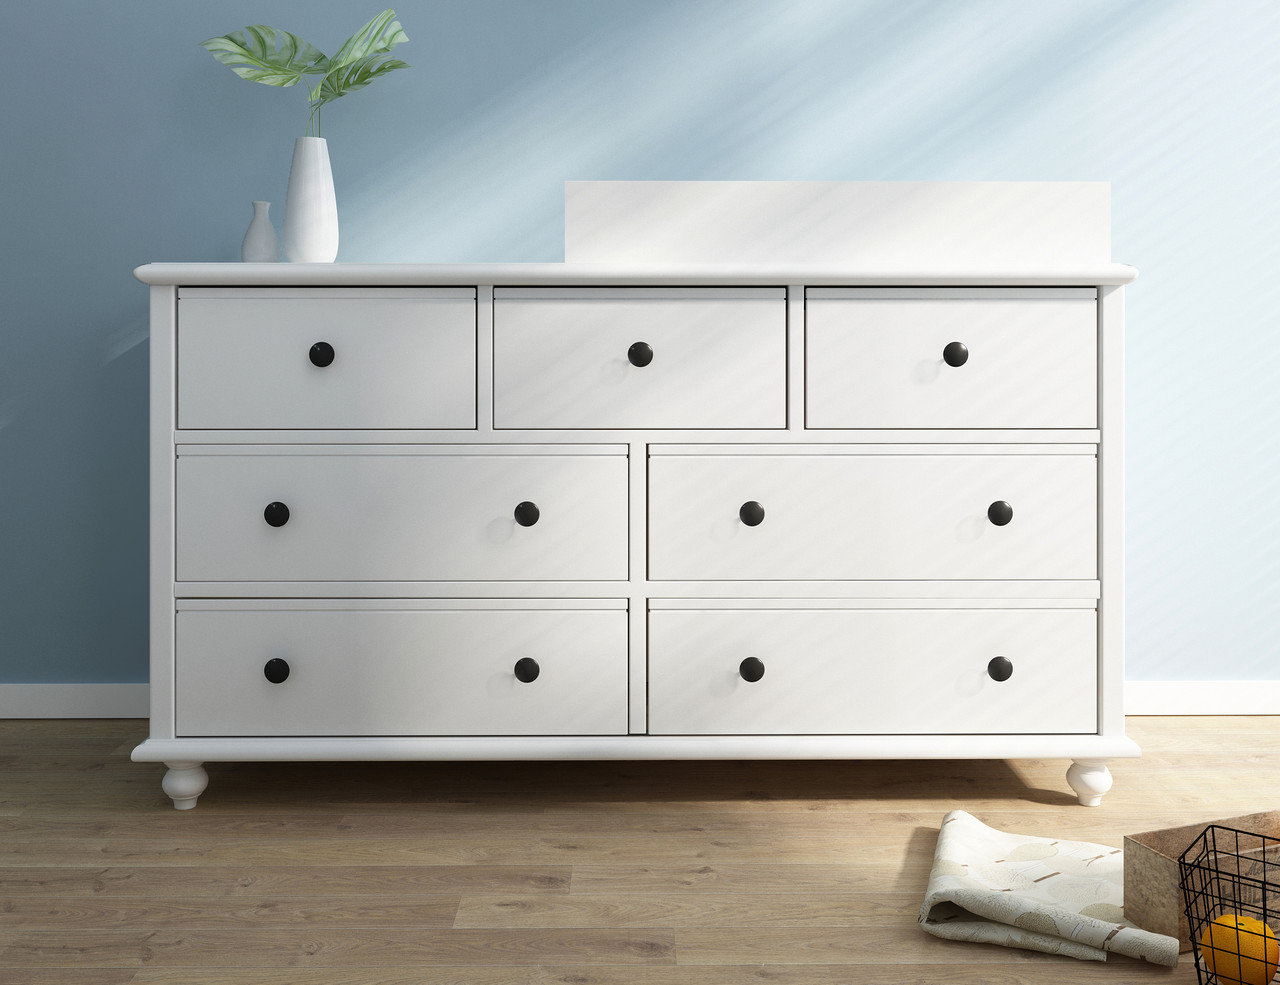 Pleasing Brand New Olivia Baby Change Table With 7 Chest Of Drawers Free Change Pad Download Free Architecture Designs Intelgarnamadebymaigaardcom